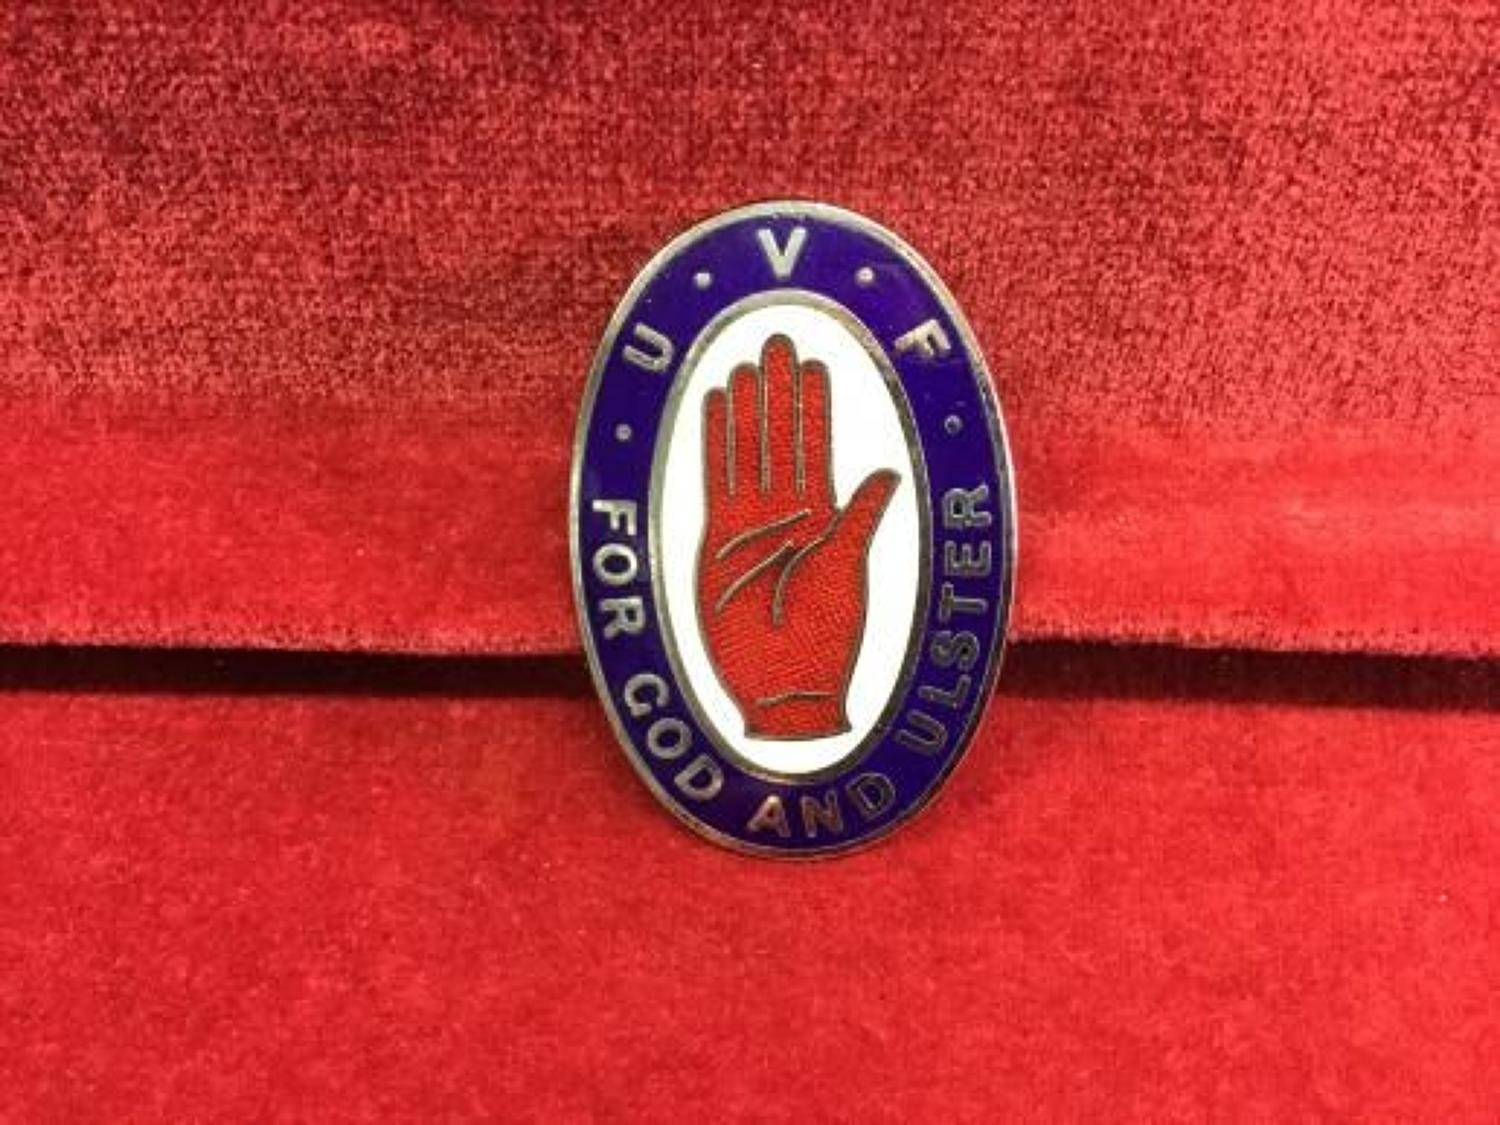 Ulster Volunteer Force Cap? Insignia